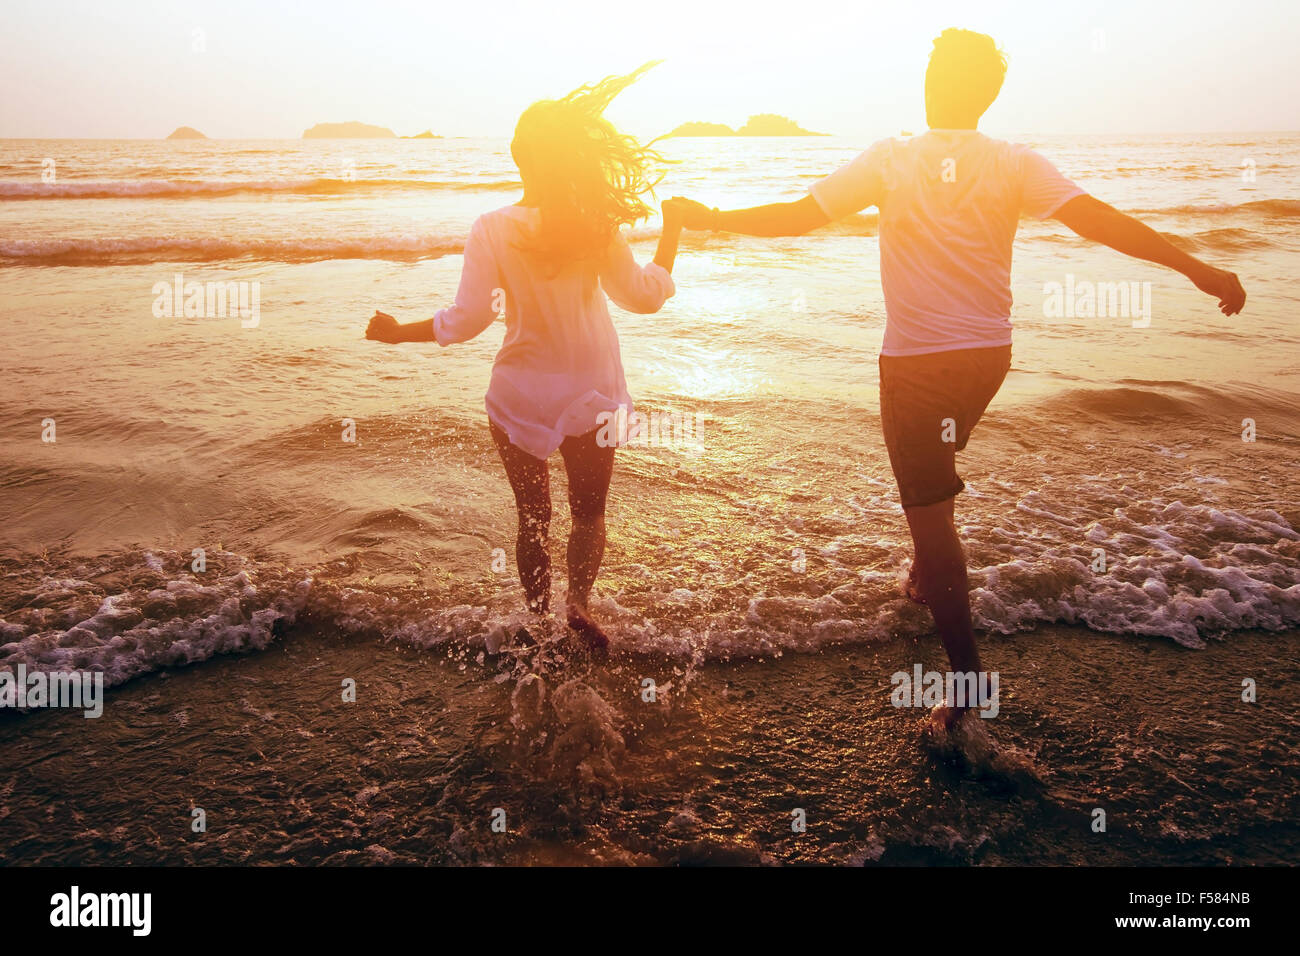 happy couple on the beach, summer vacations or honeymoon - Stock Image